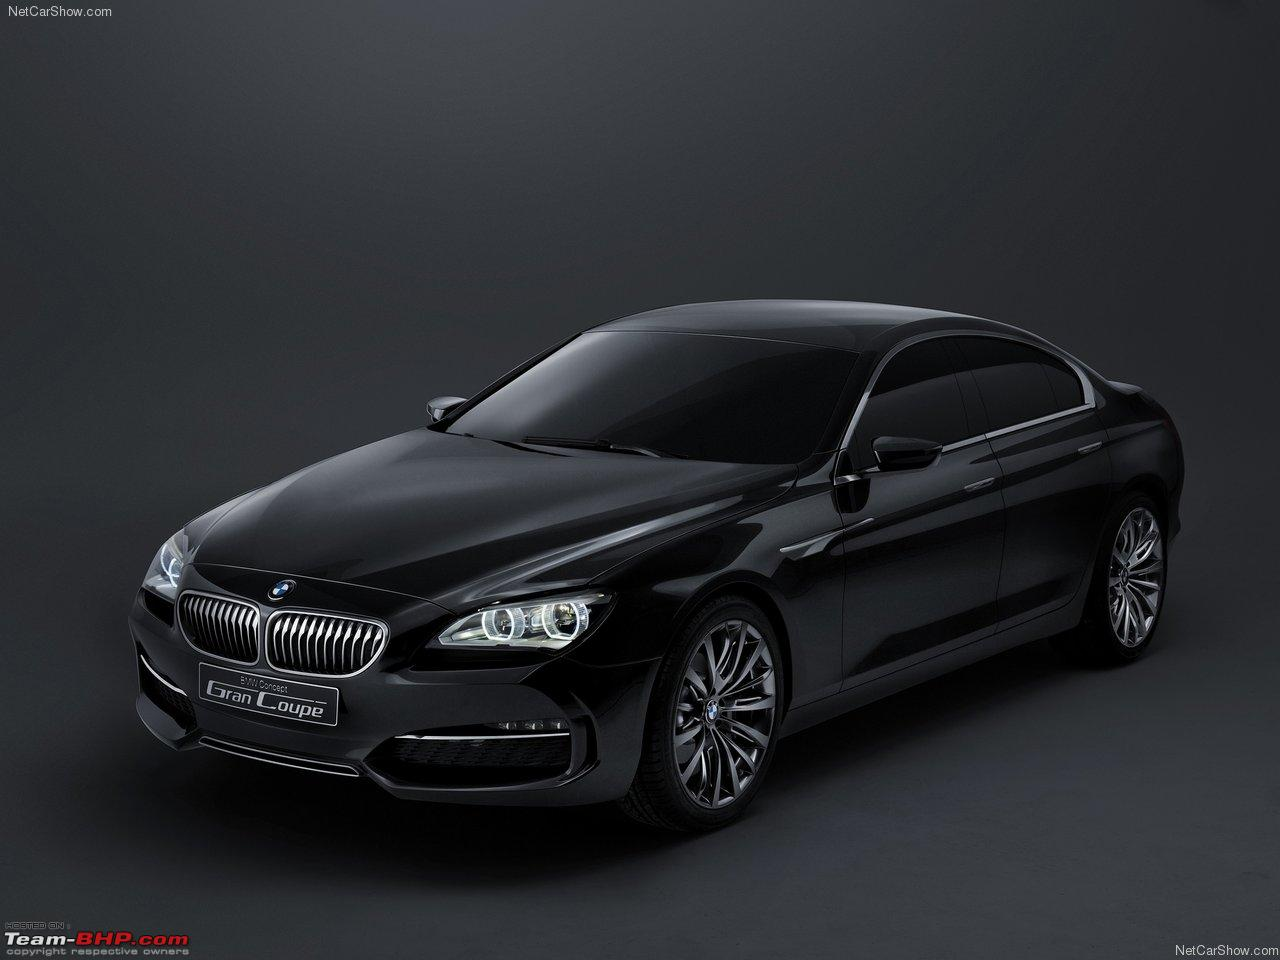 bmw grancoupe 4 door 6 series edit now officially unveiled team bhp. Black Bedroom Furniture Sets. Home Design Ideas